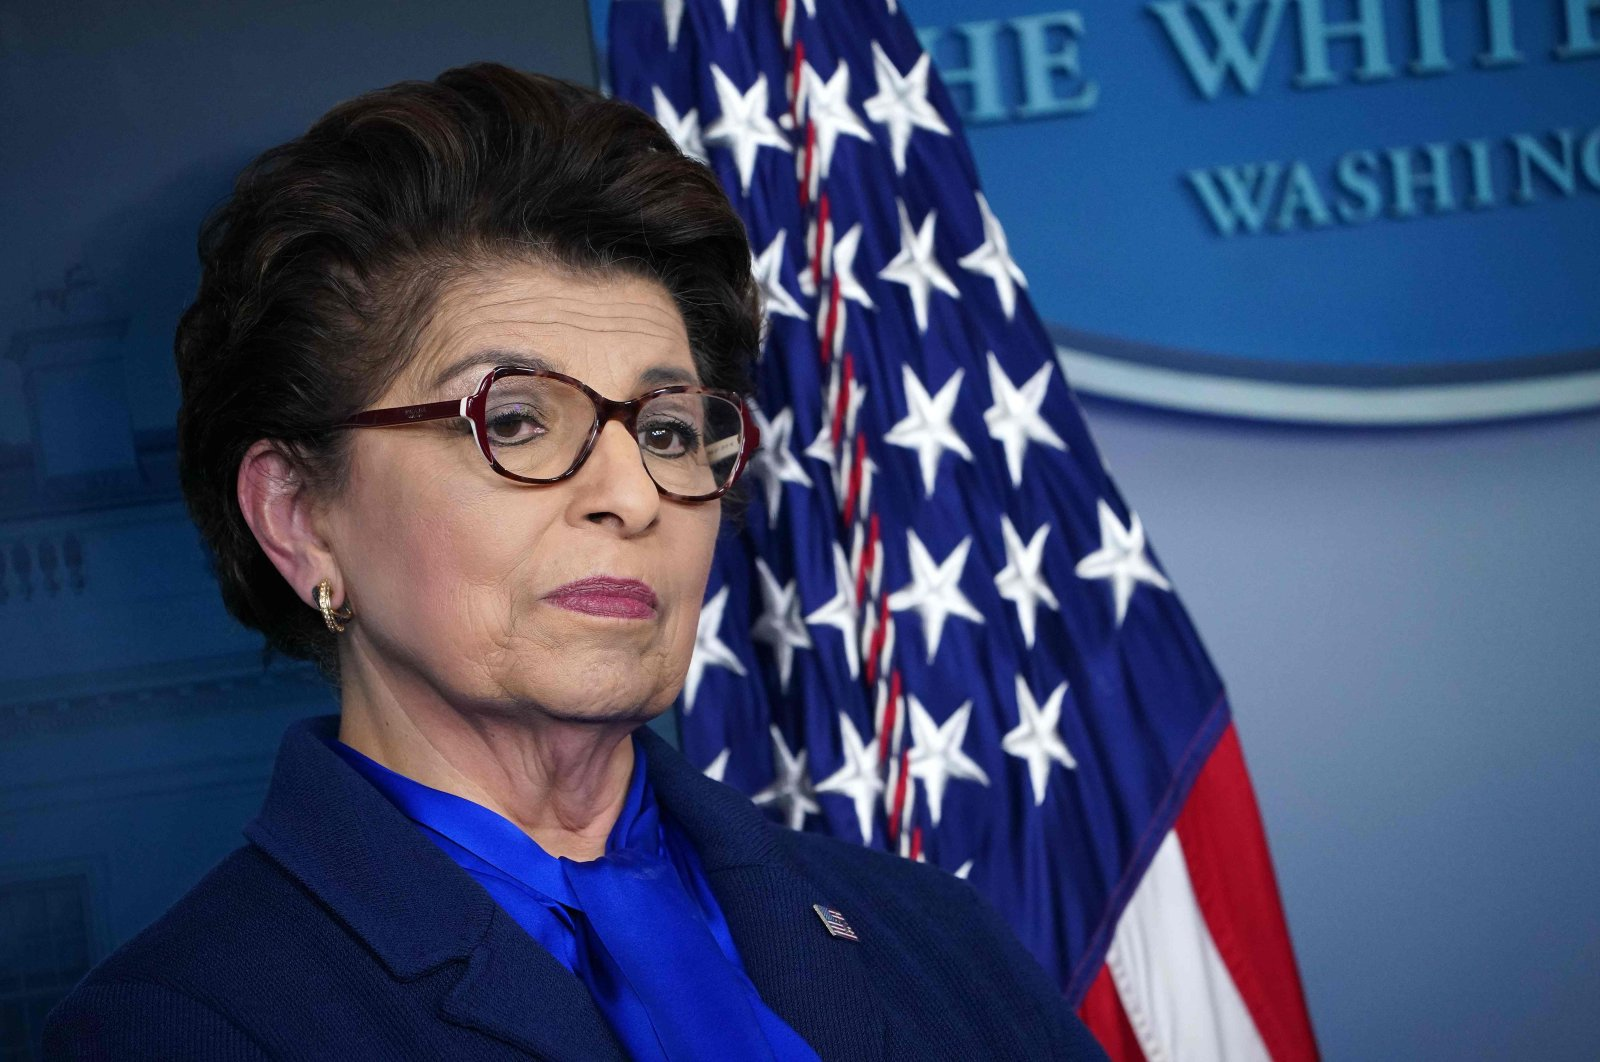 In this file photo taken on April 02, 2020, the Administrator of the Small Business Administration Jovita Carranza attends the daily briefing on the novel coronavirus in the Brady Briefing Room at the White House in Washington, DC. (AFP Photo)